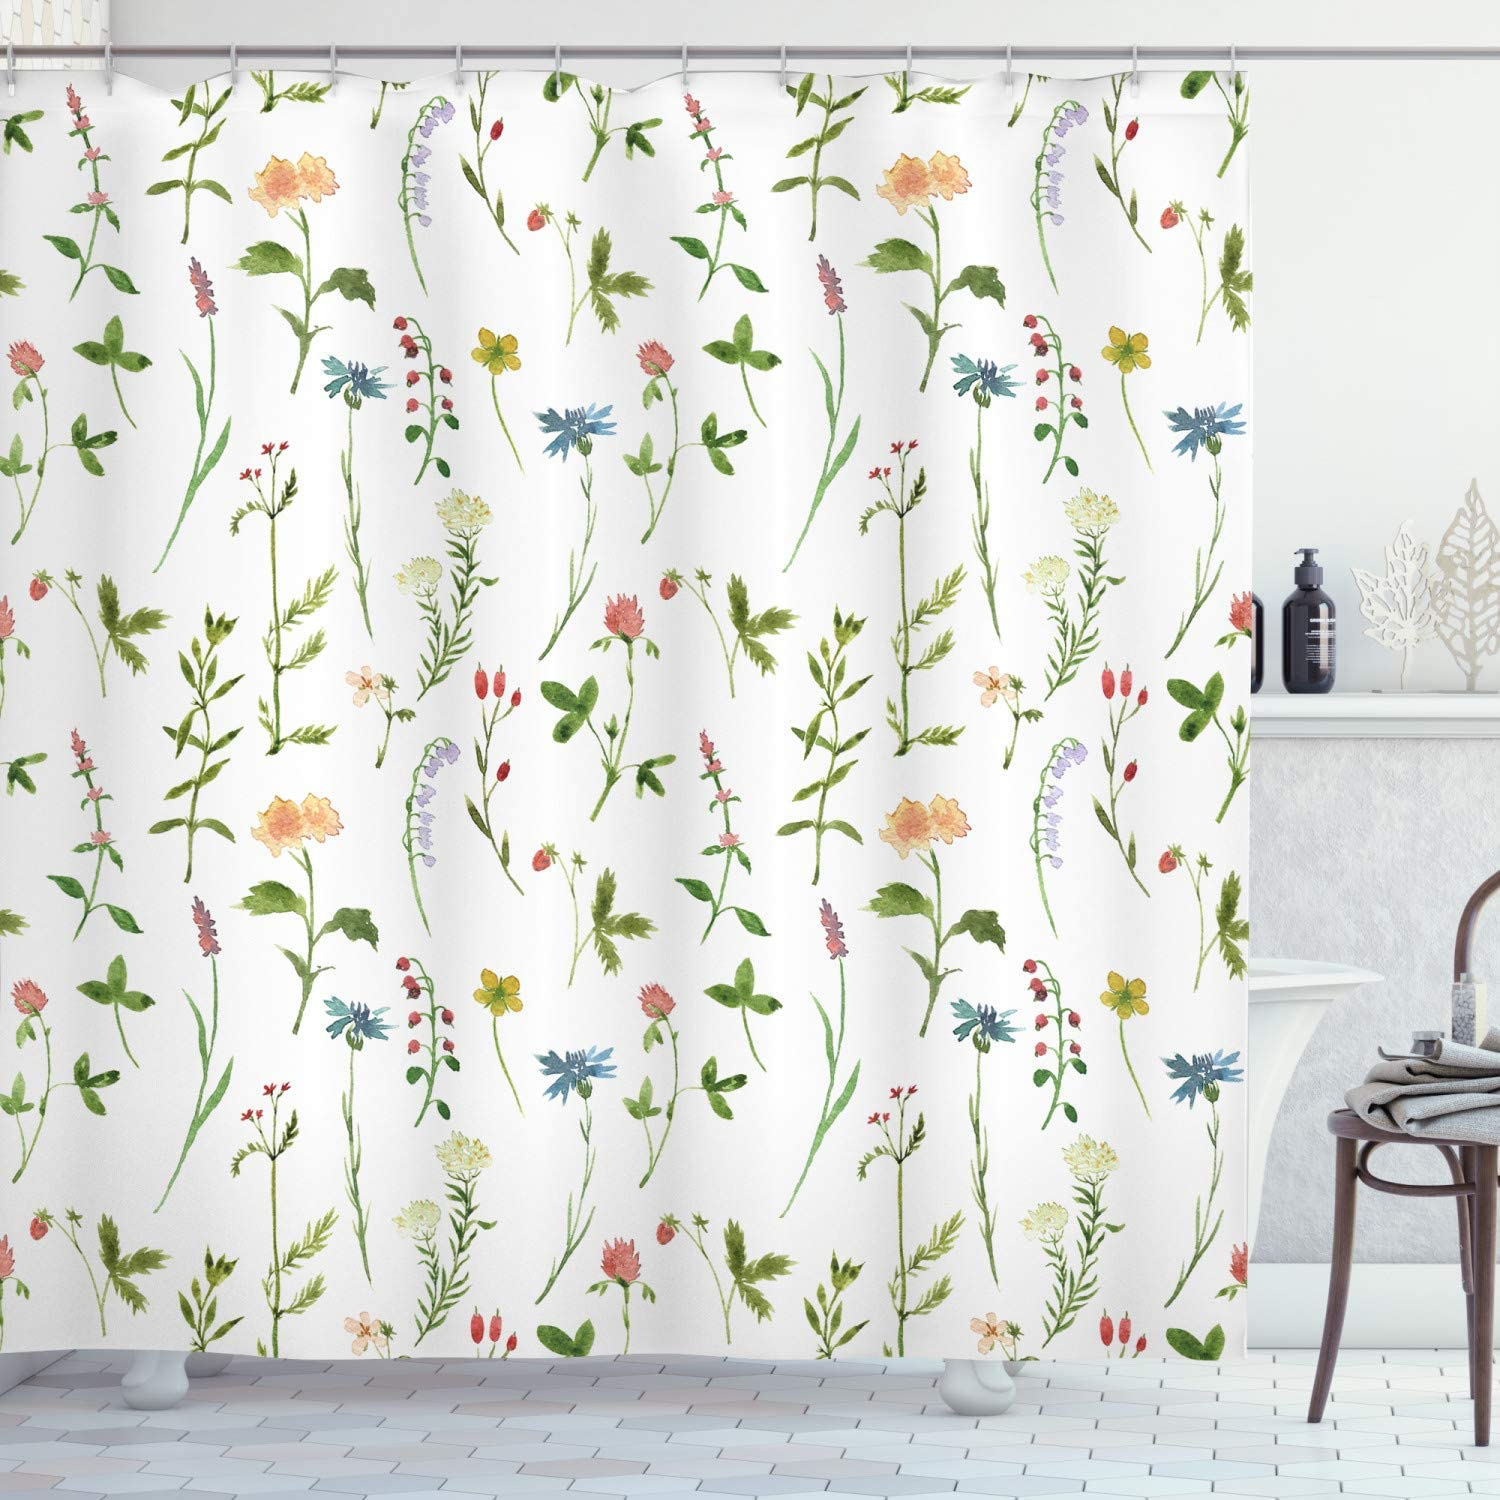 "Ambesonne Floral Shower Curtain, Spring Season Themed Watercolors Painting of Herbs Flowers Botanical Garden Artwork, Cloth Fabric Bathroom Decor Set with Hooks, 70"" Long, Ivory"